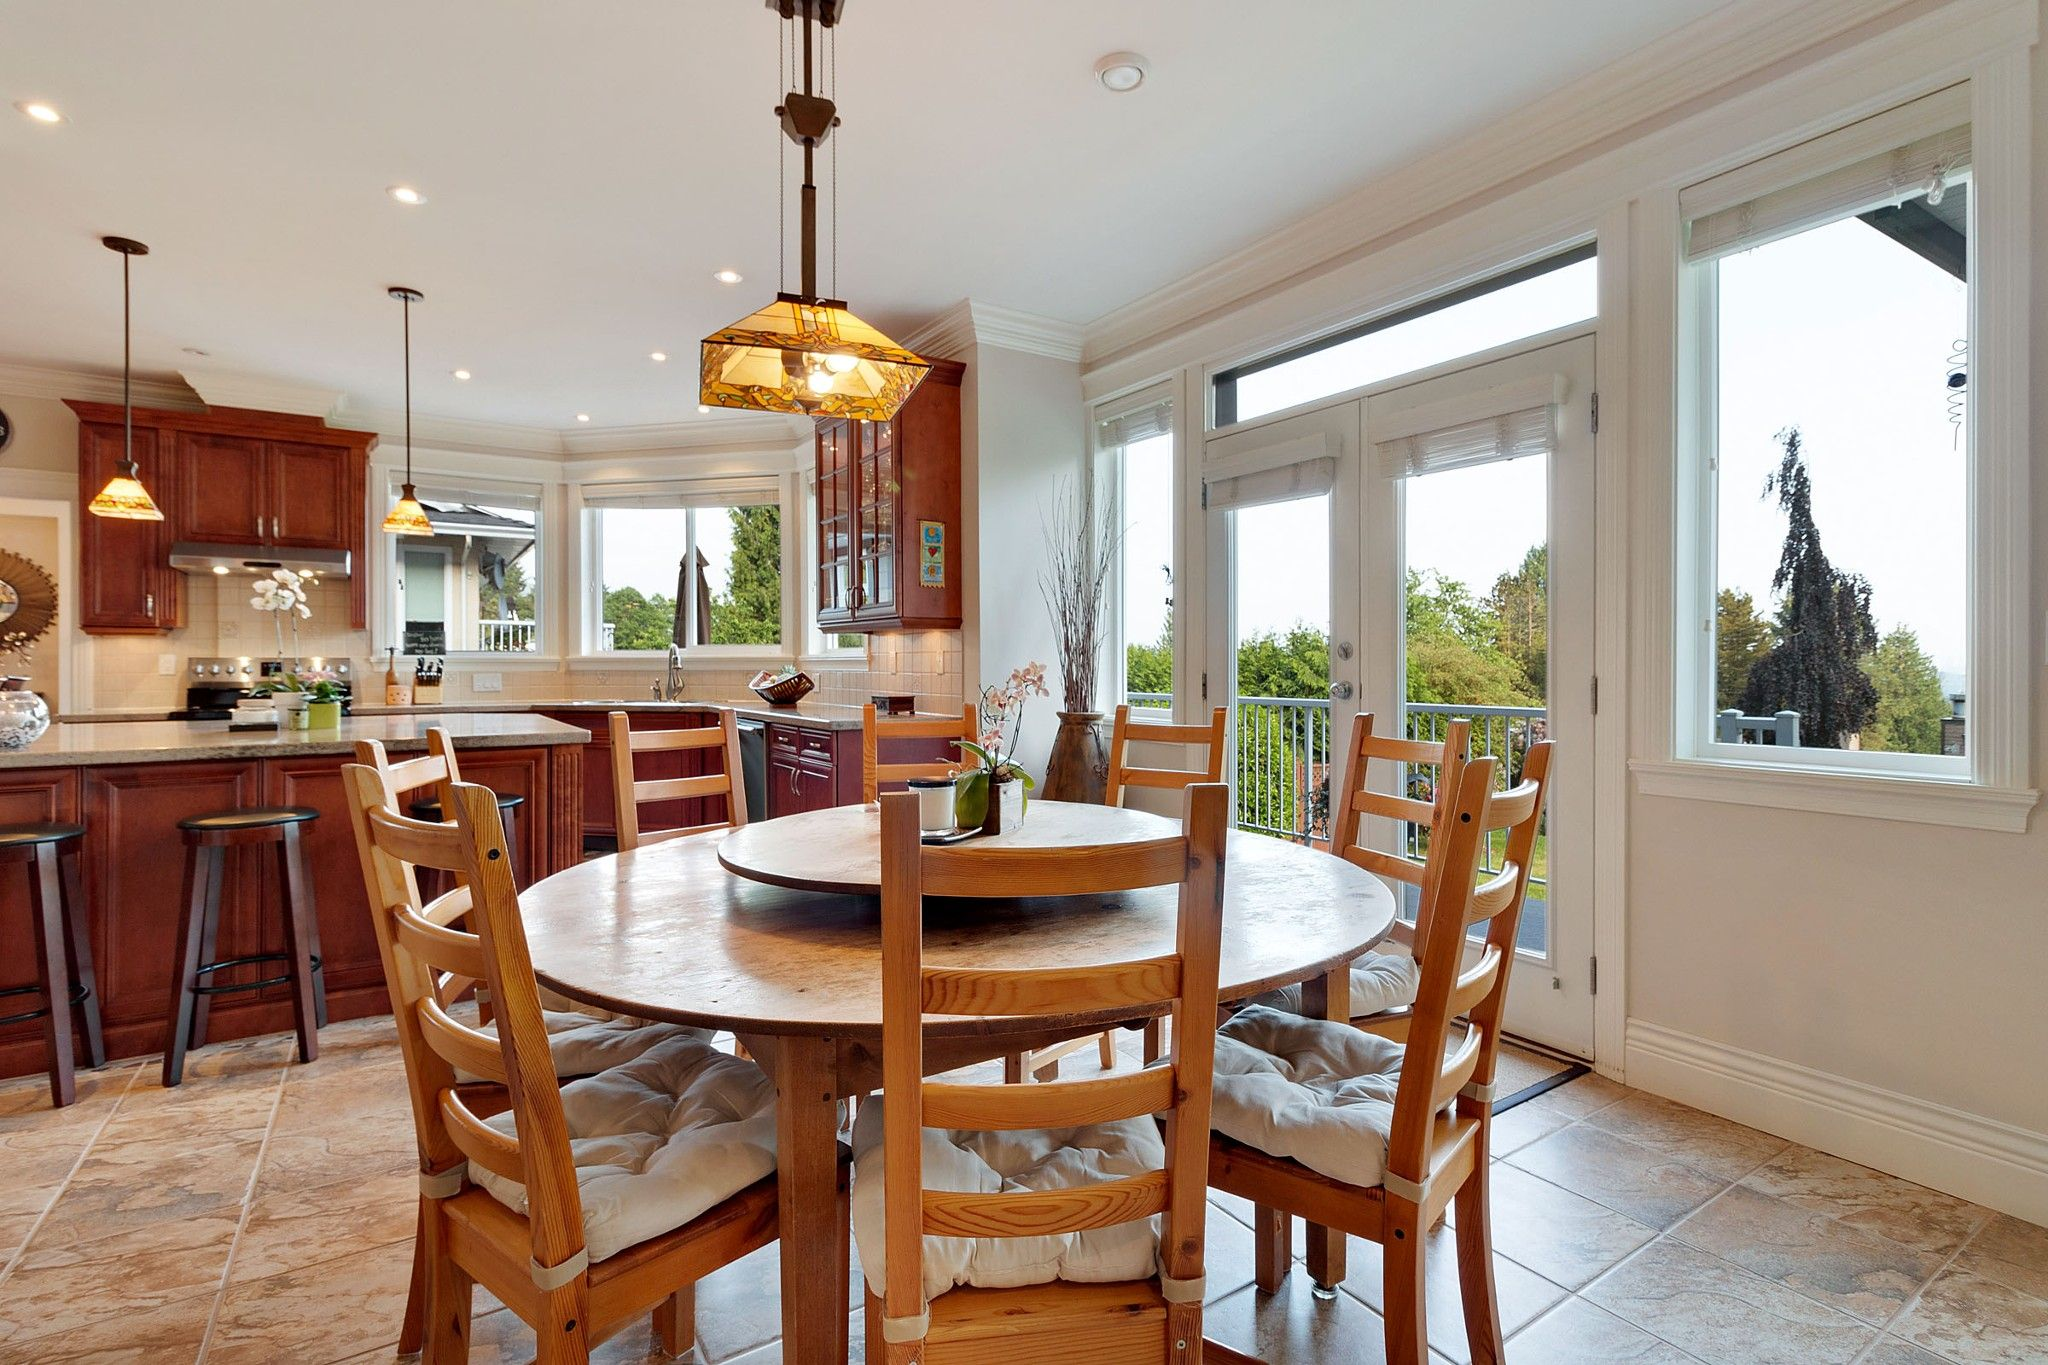 Photo 13: Photos: 1237 DYCK Road in North Vancouver: Lynn Valley House for sale : MLS®# R2374868